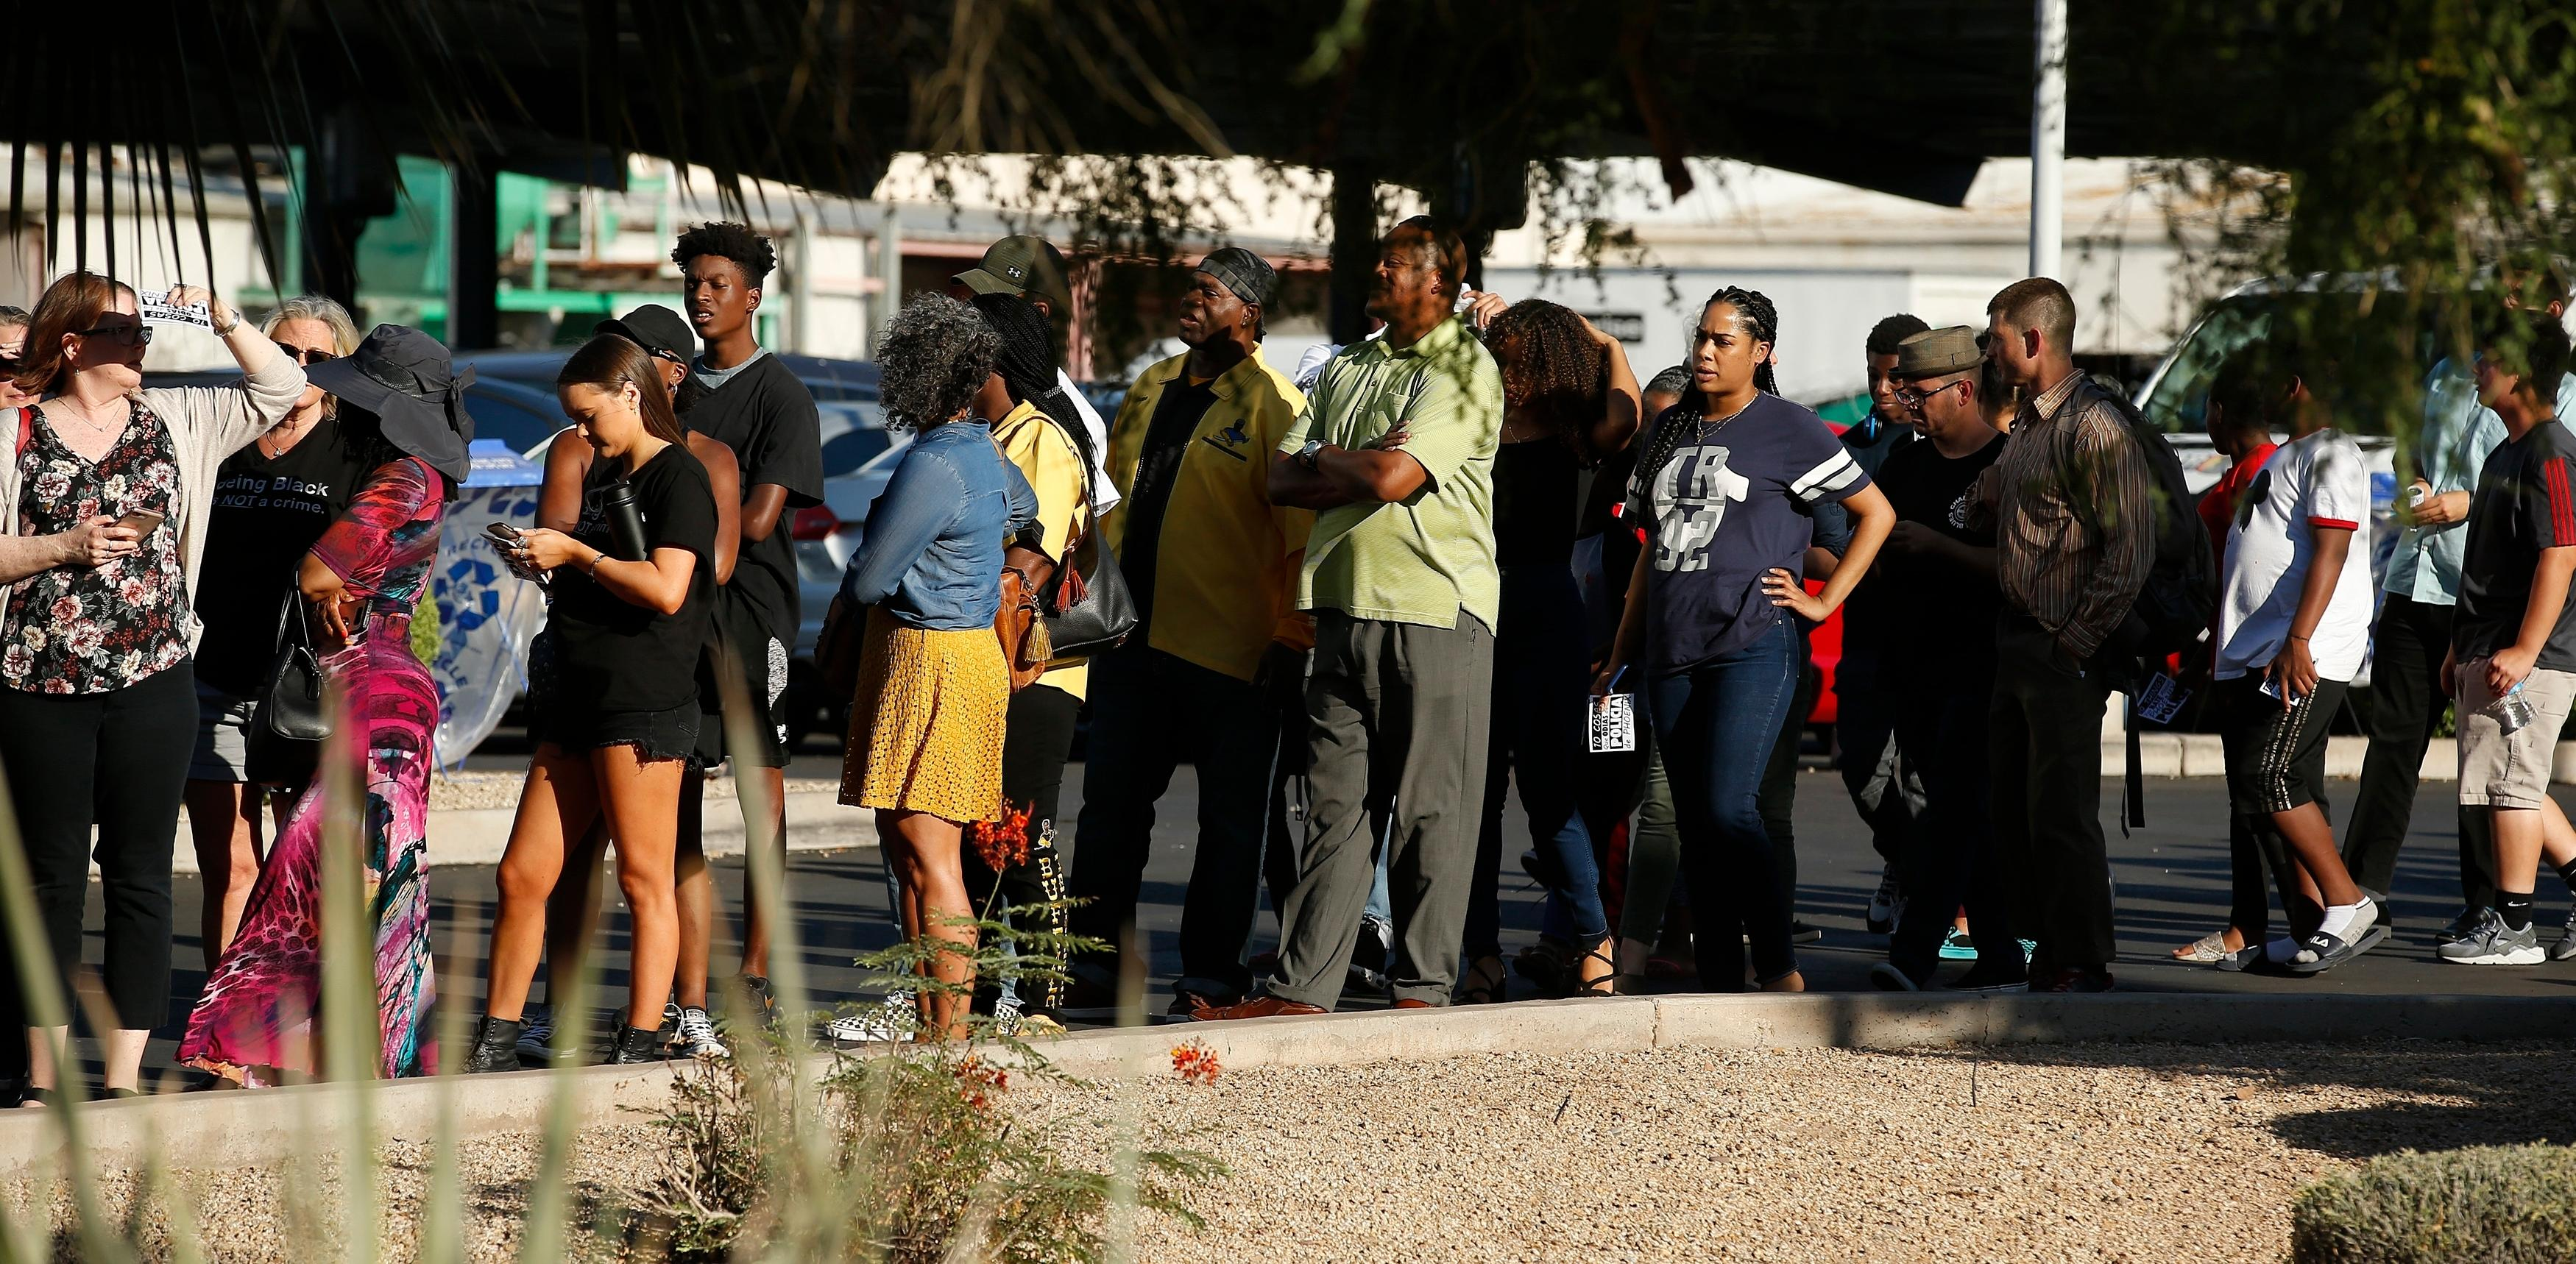 People line up to attend a community meeting, Tuesday, June 18, 2019, in Phoenix. (AP Photo/Ross D. Franklin)